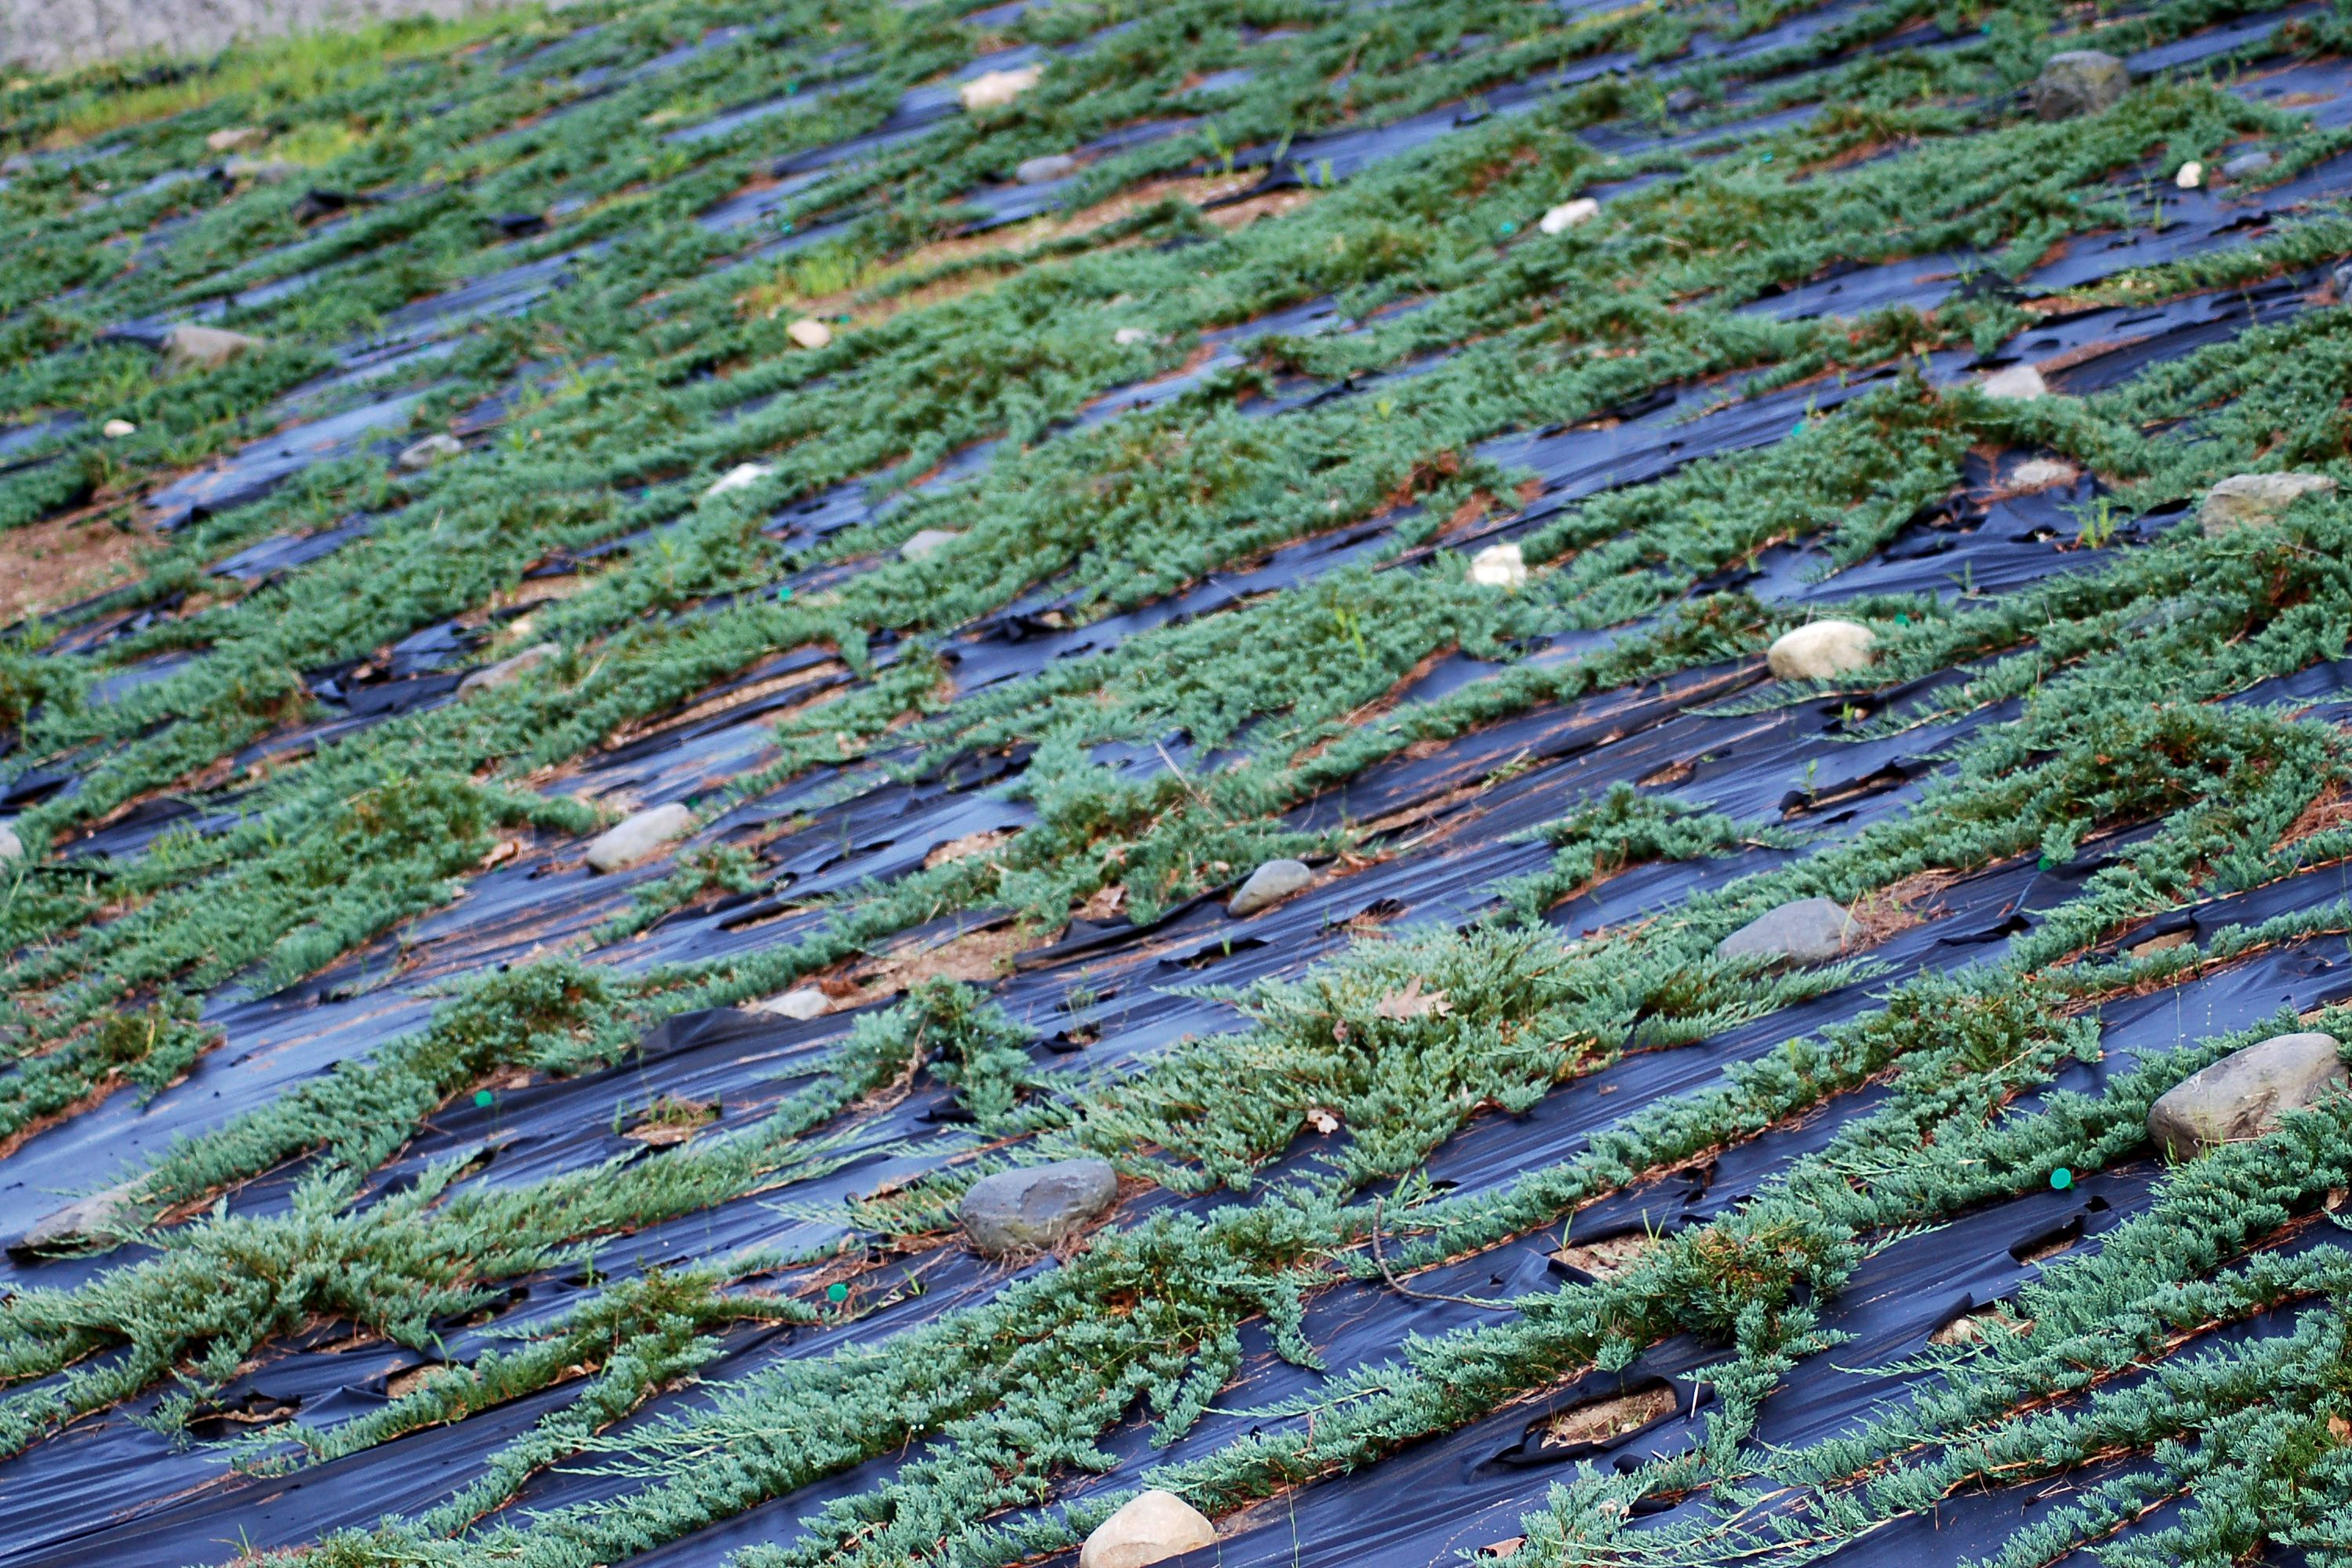 Wilton's Carpet (photo) is a type of creeping juniper.